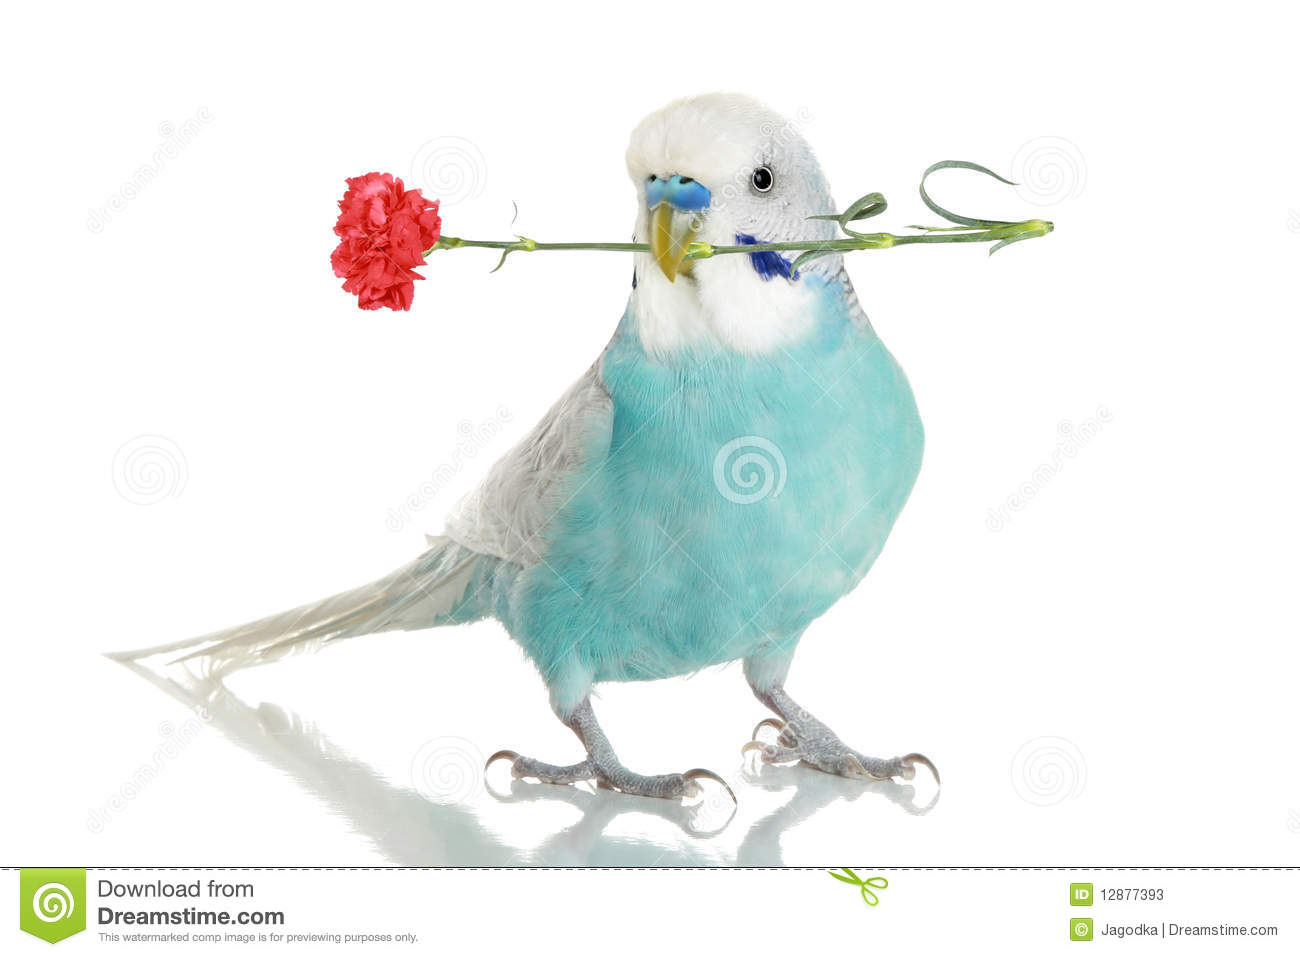 Blue budgie with a carnation